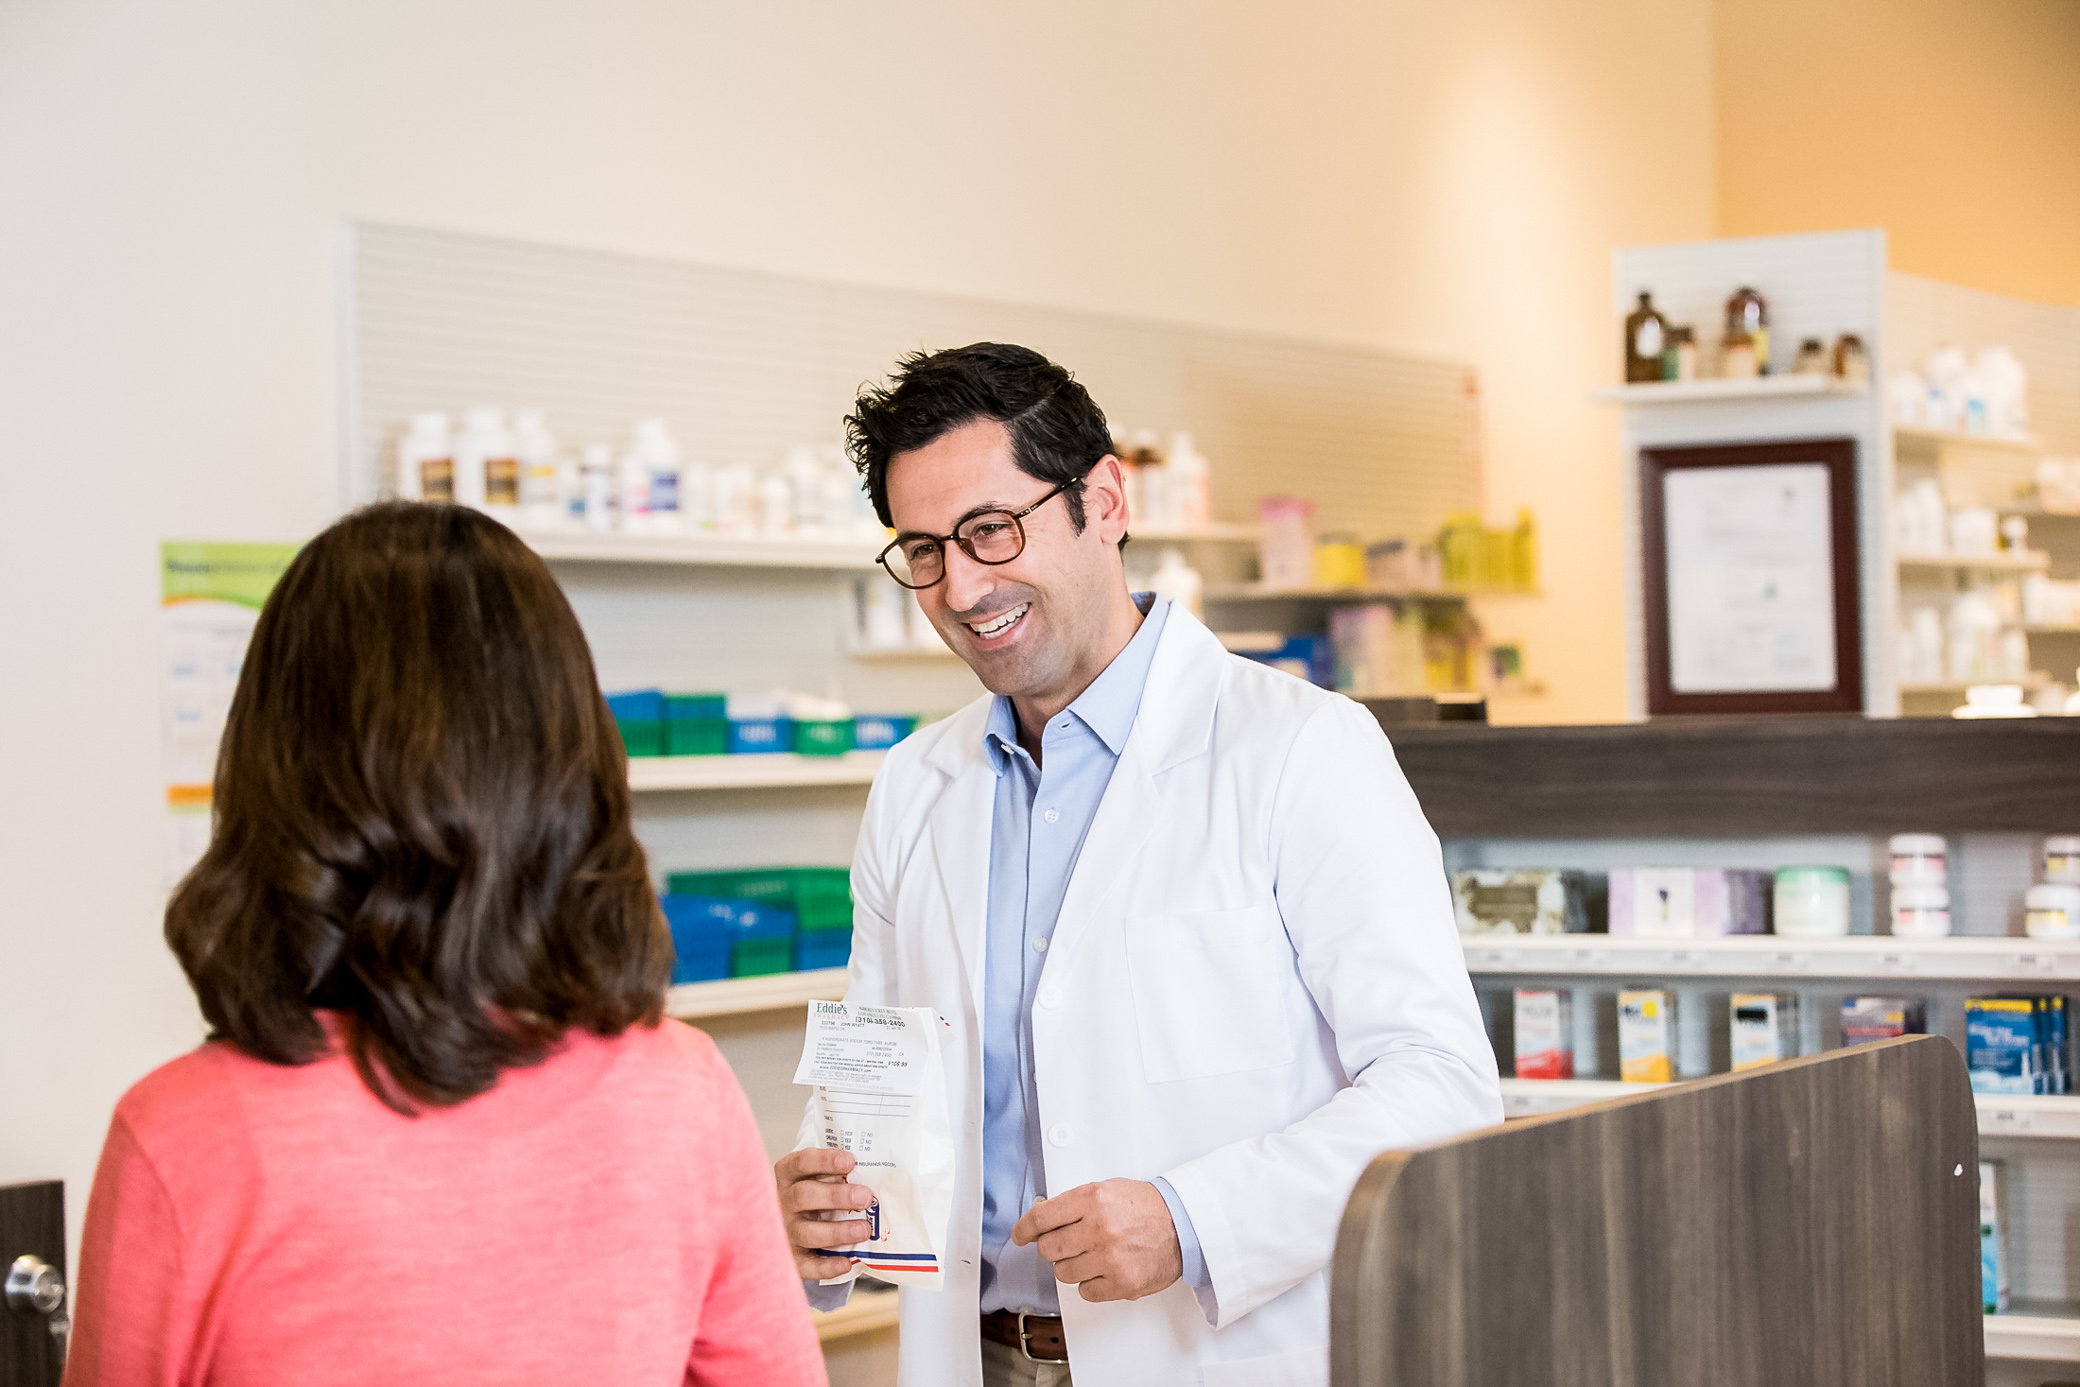 EL_2_PHARMACY_1_PharmacistCounter_057.jpg